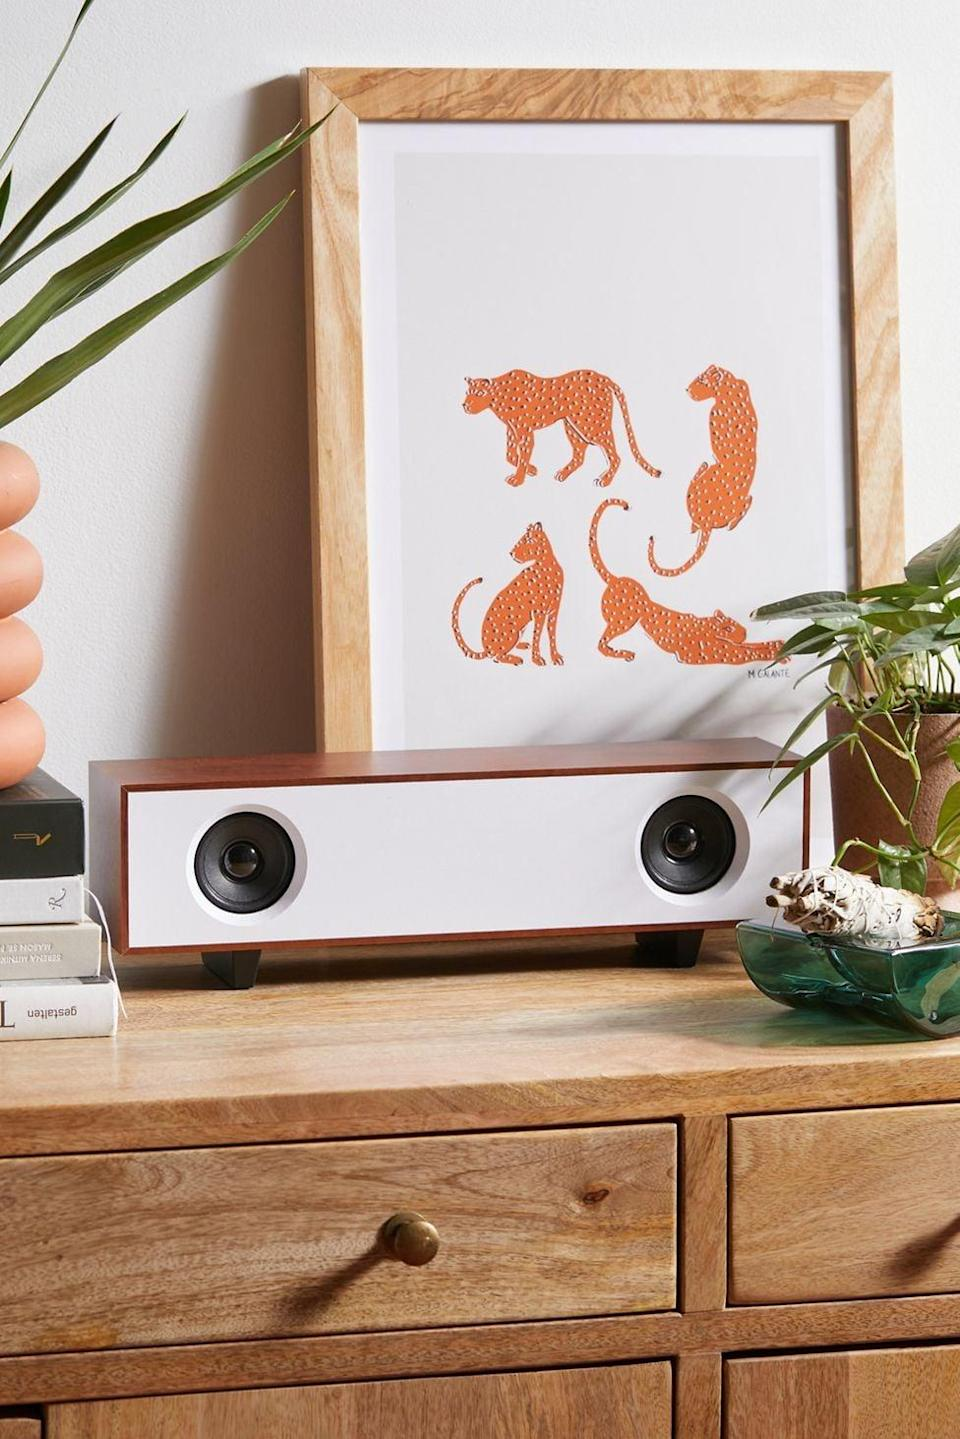 <p>They'll love listening to their favorite tuns on the <span>ART+SOUND Avant Soundbar Speaker</span> ($50). The stylish design will look good on display too.</p>